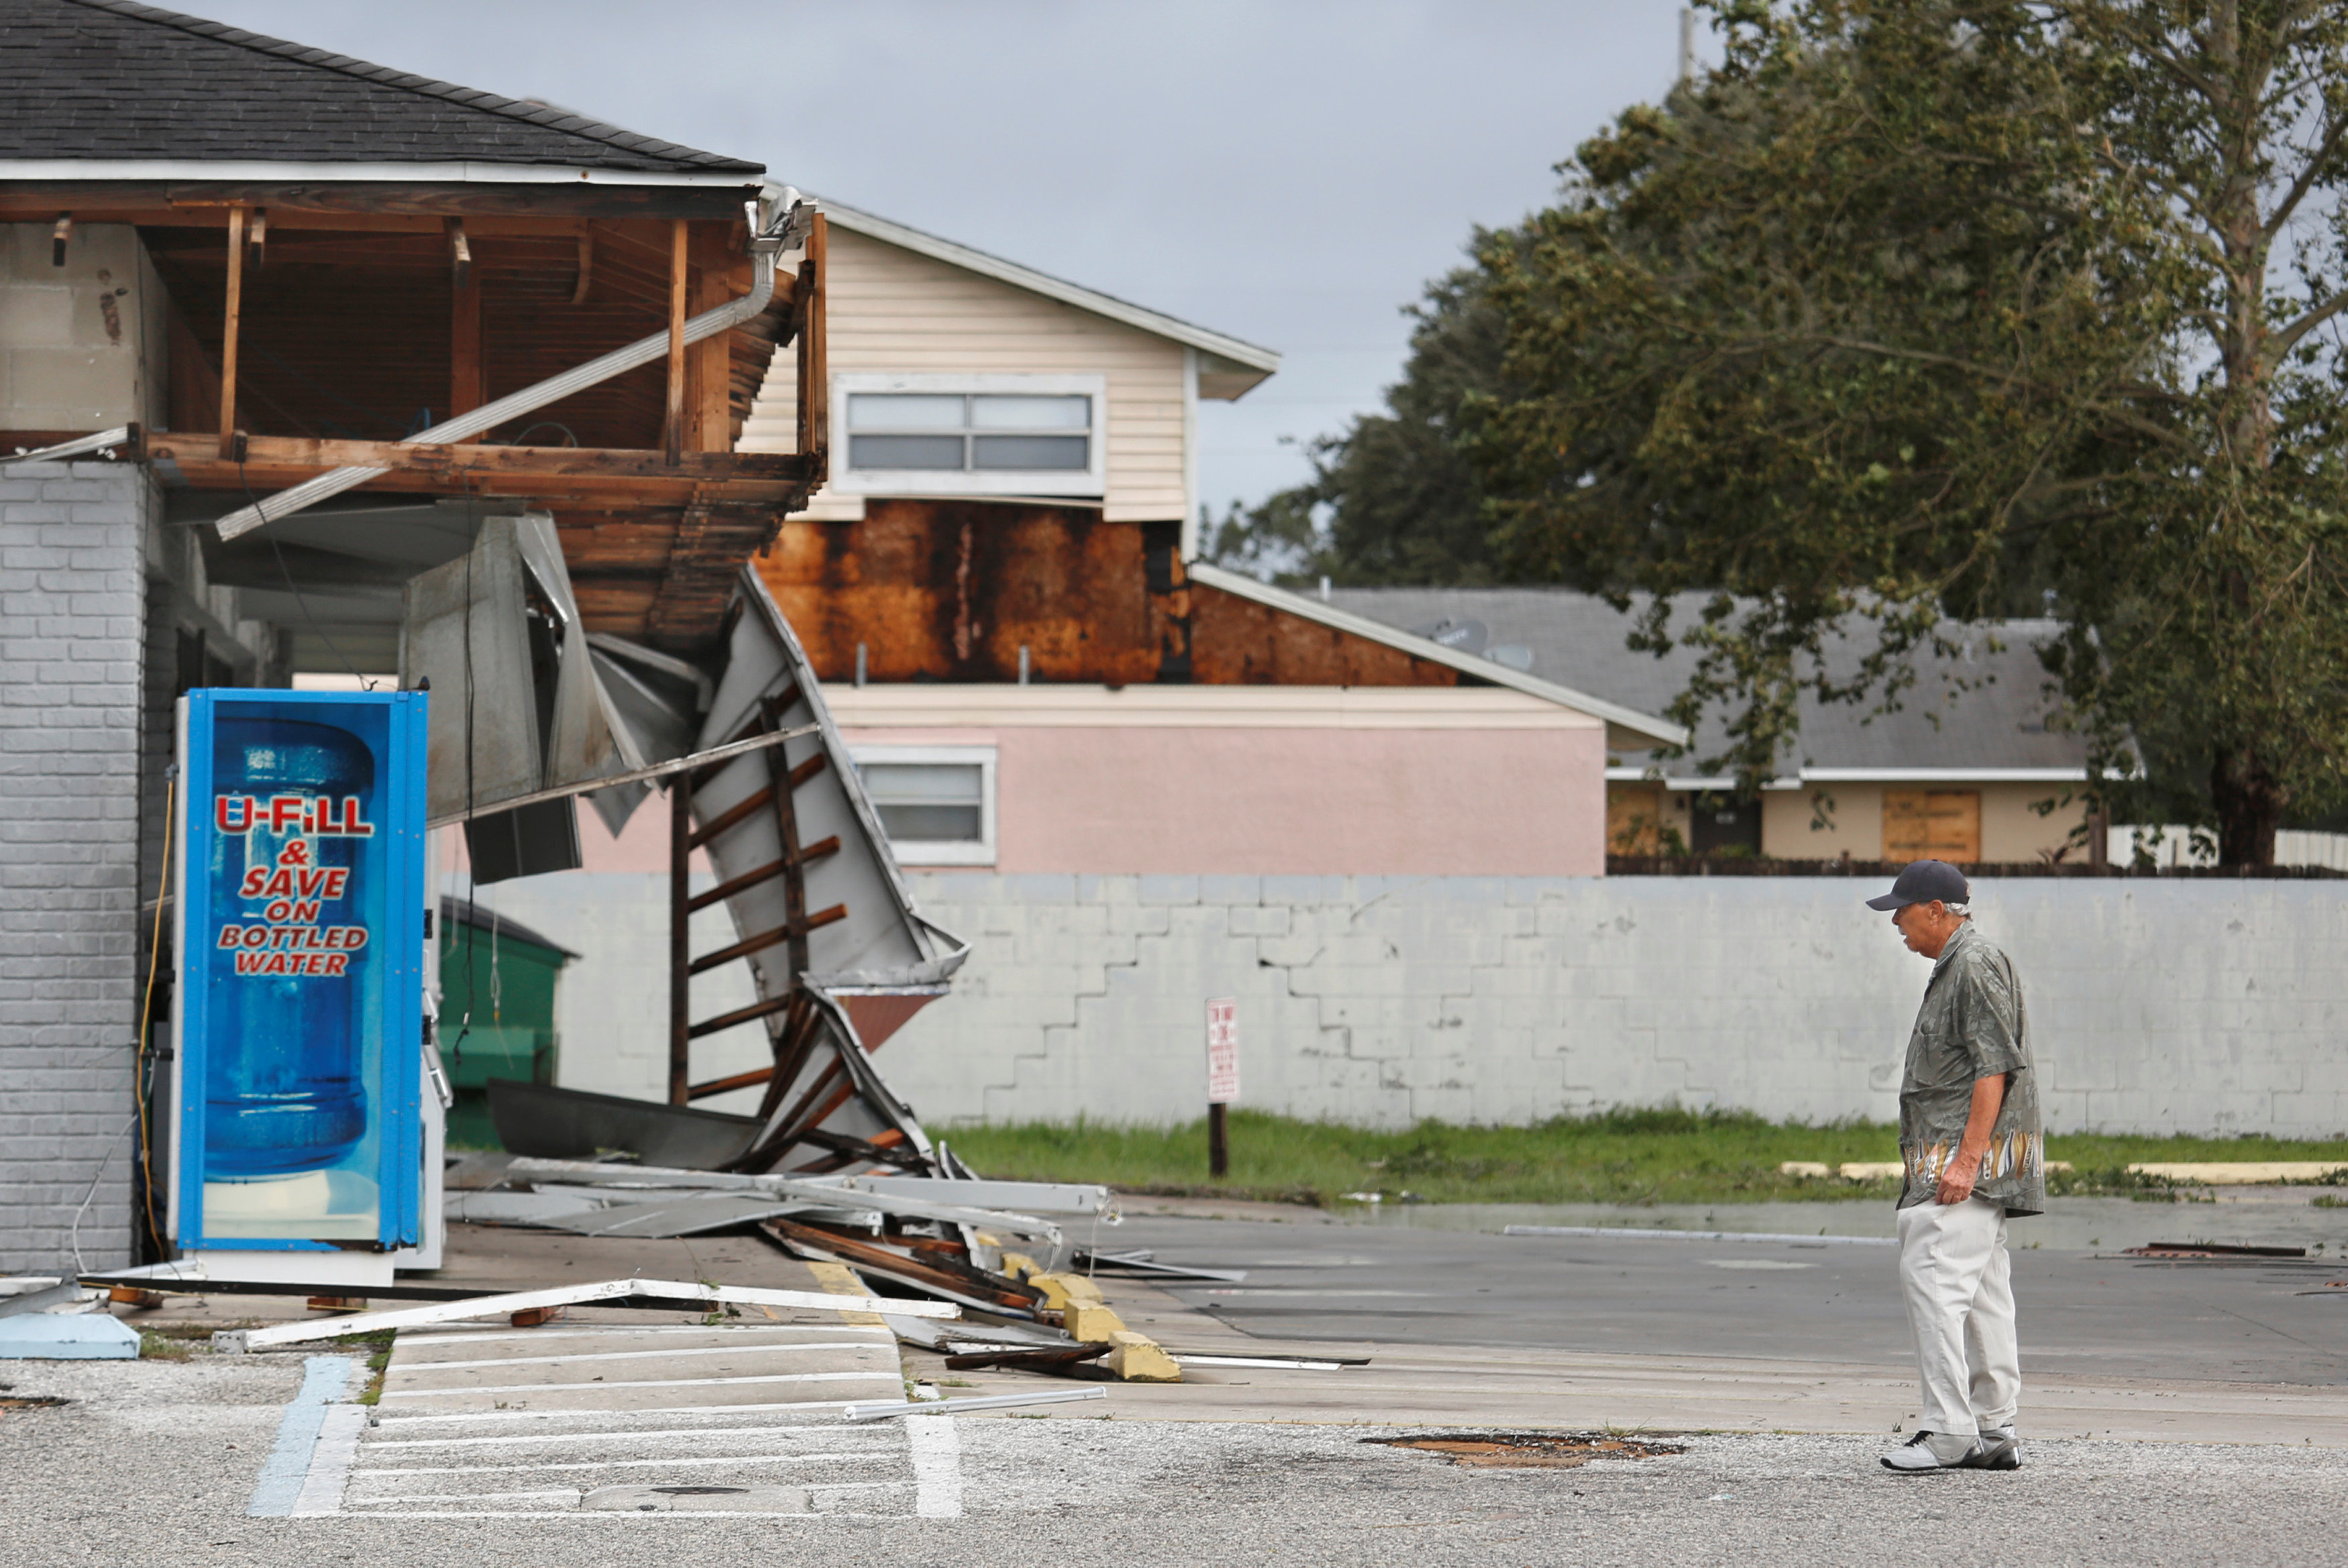 A local resident observes the remains of a Sunoco gas station in the wake of Hurricane Irma in Kissimmee, Florida on Sept. 11, 2017. (REUTERS/Gregg Newton)